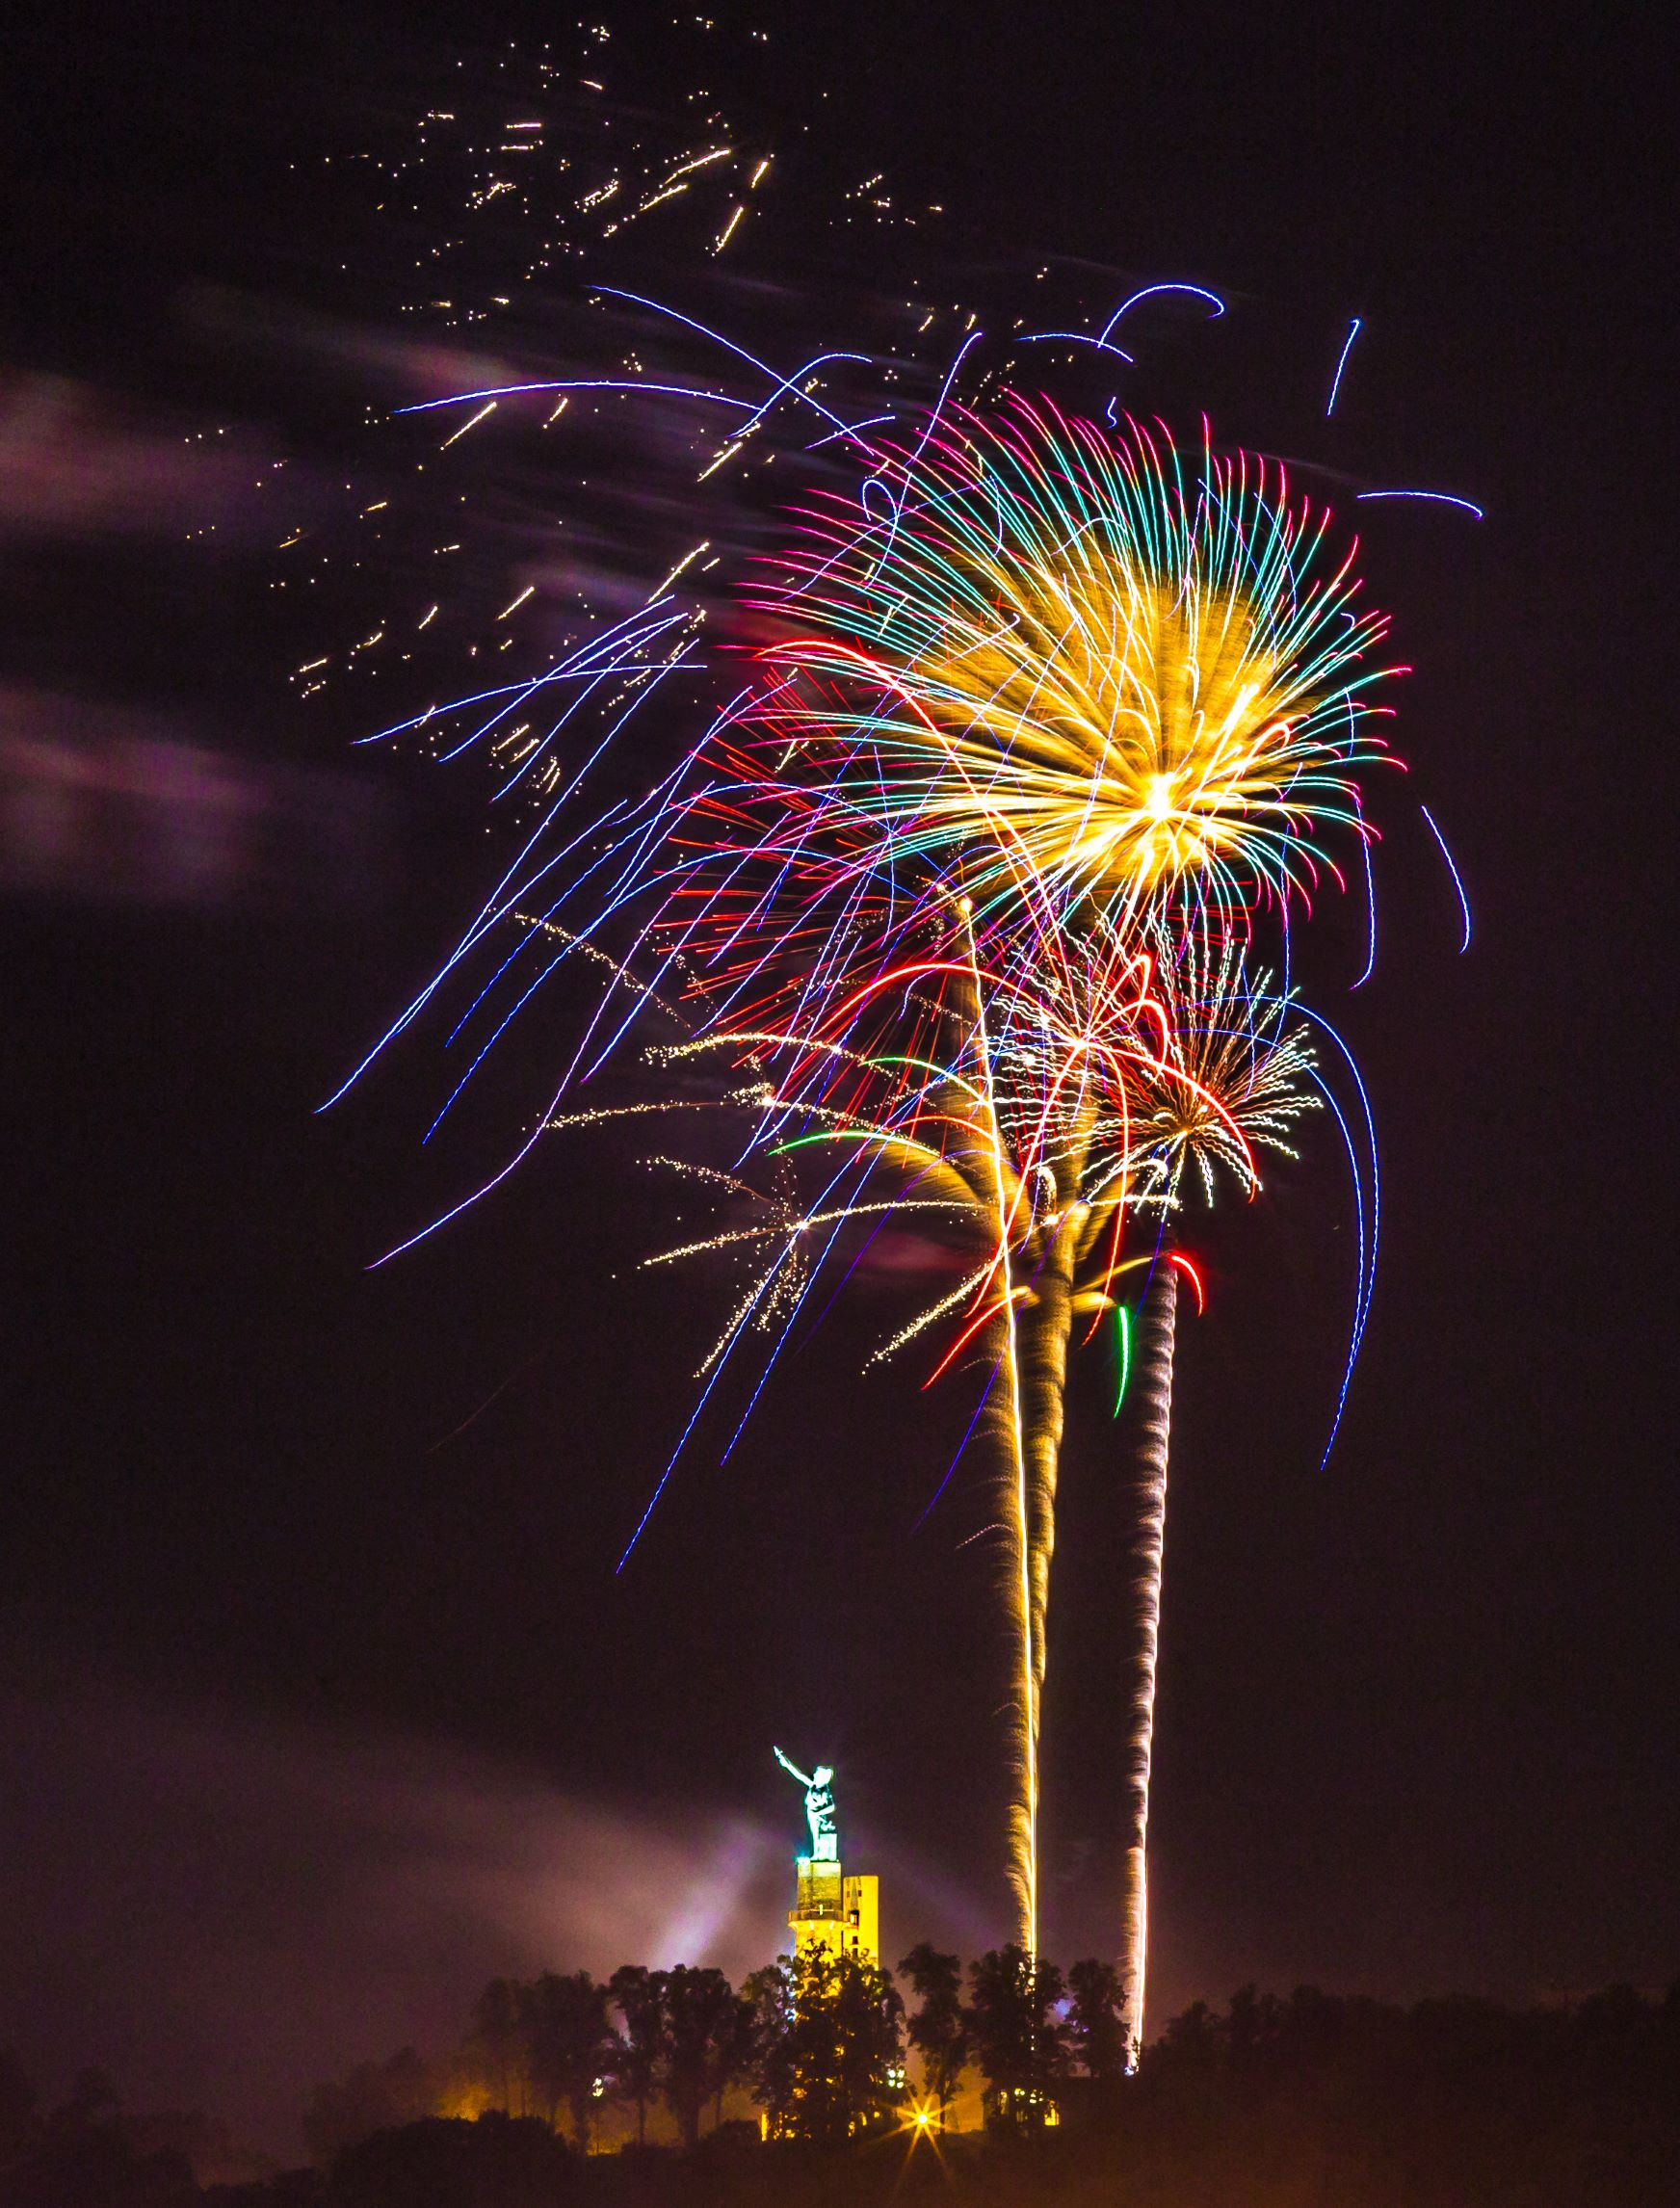 Pink, green, yellow, and blue fireworks over the statue of Vulcan with trees in the foreground